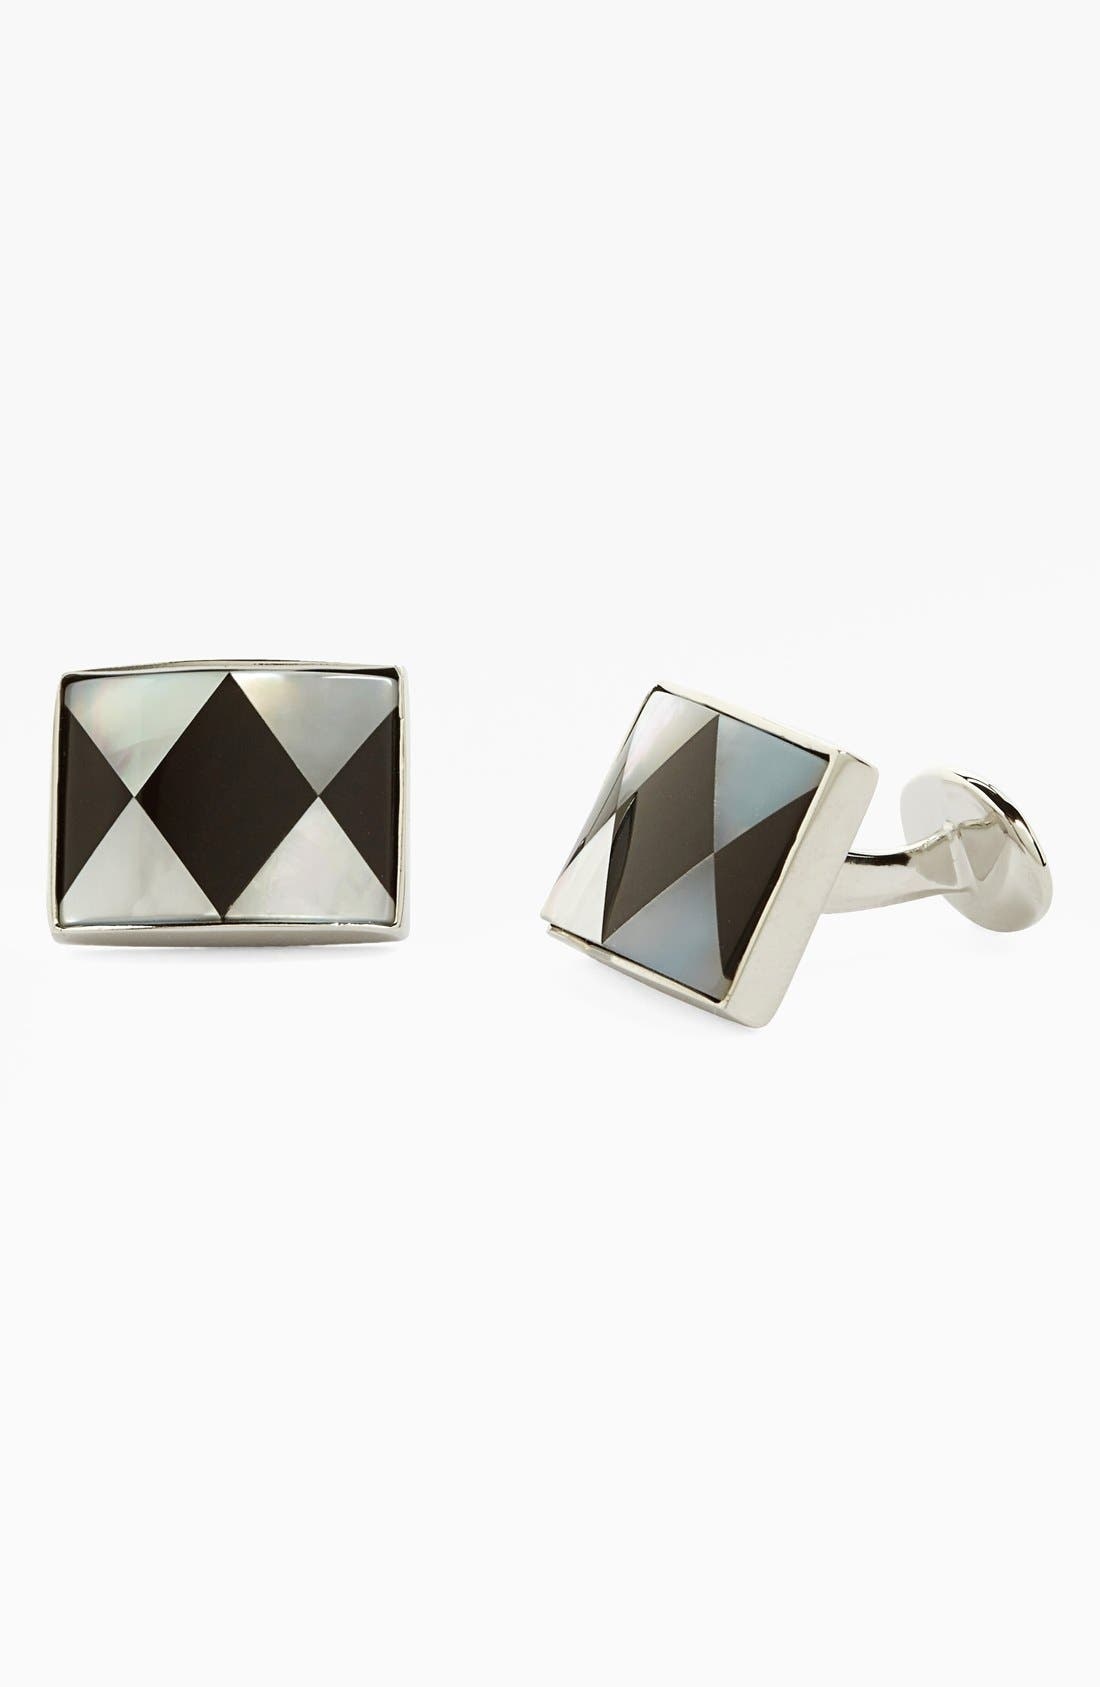 Onyx & Mother of Pearl Cuff Links,                         Main,                         color, Silver/ Onyx/ Mother Of Pearl